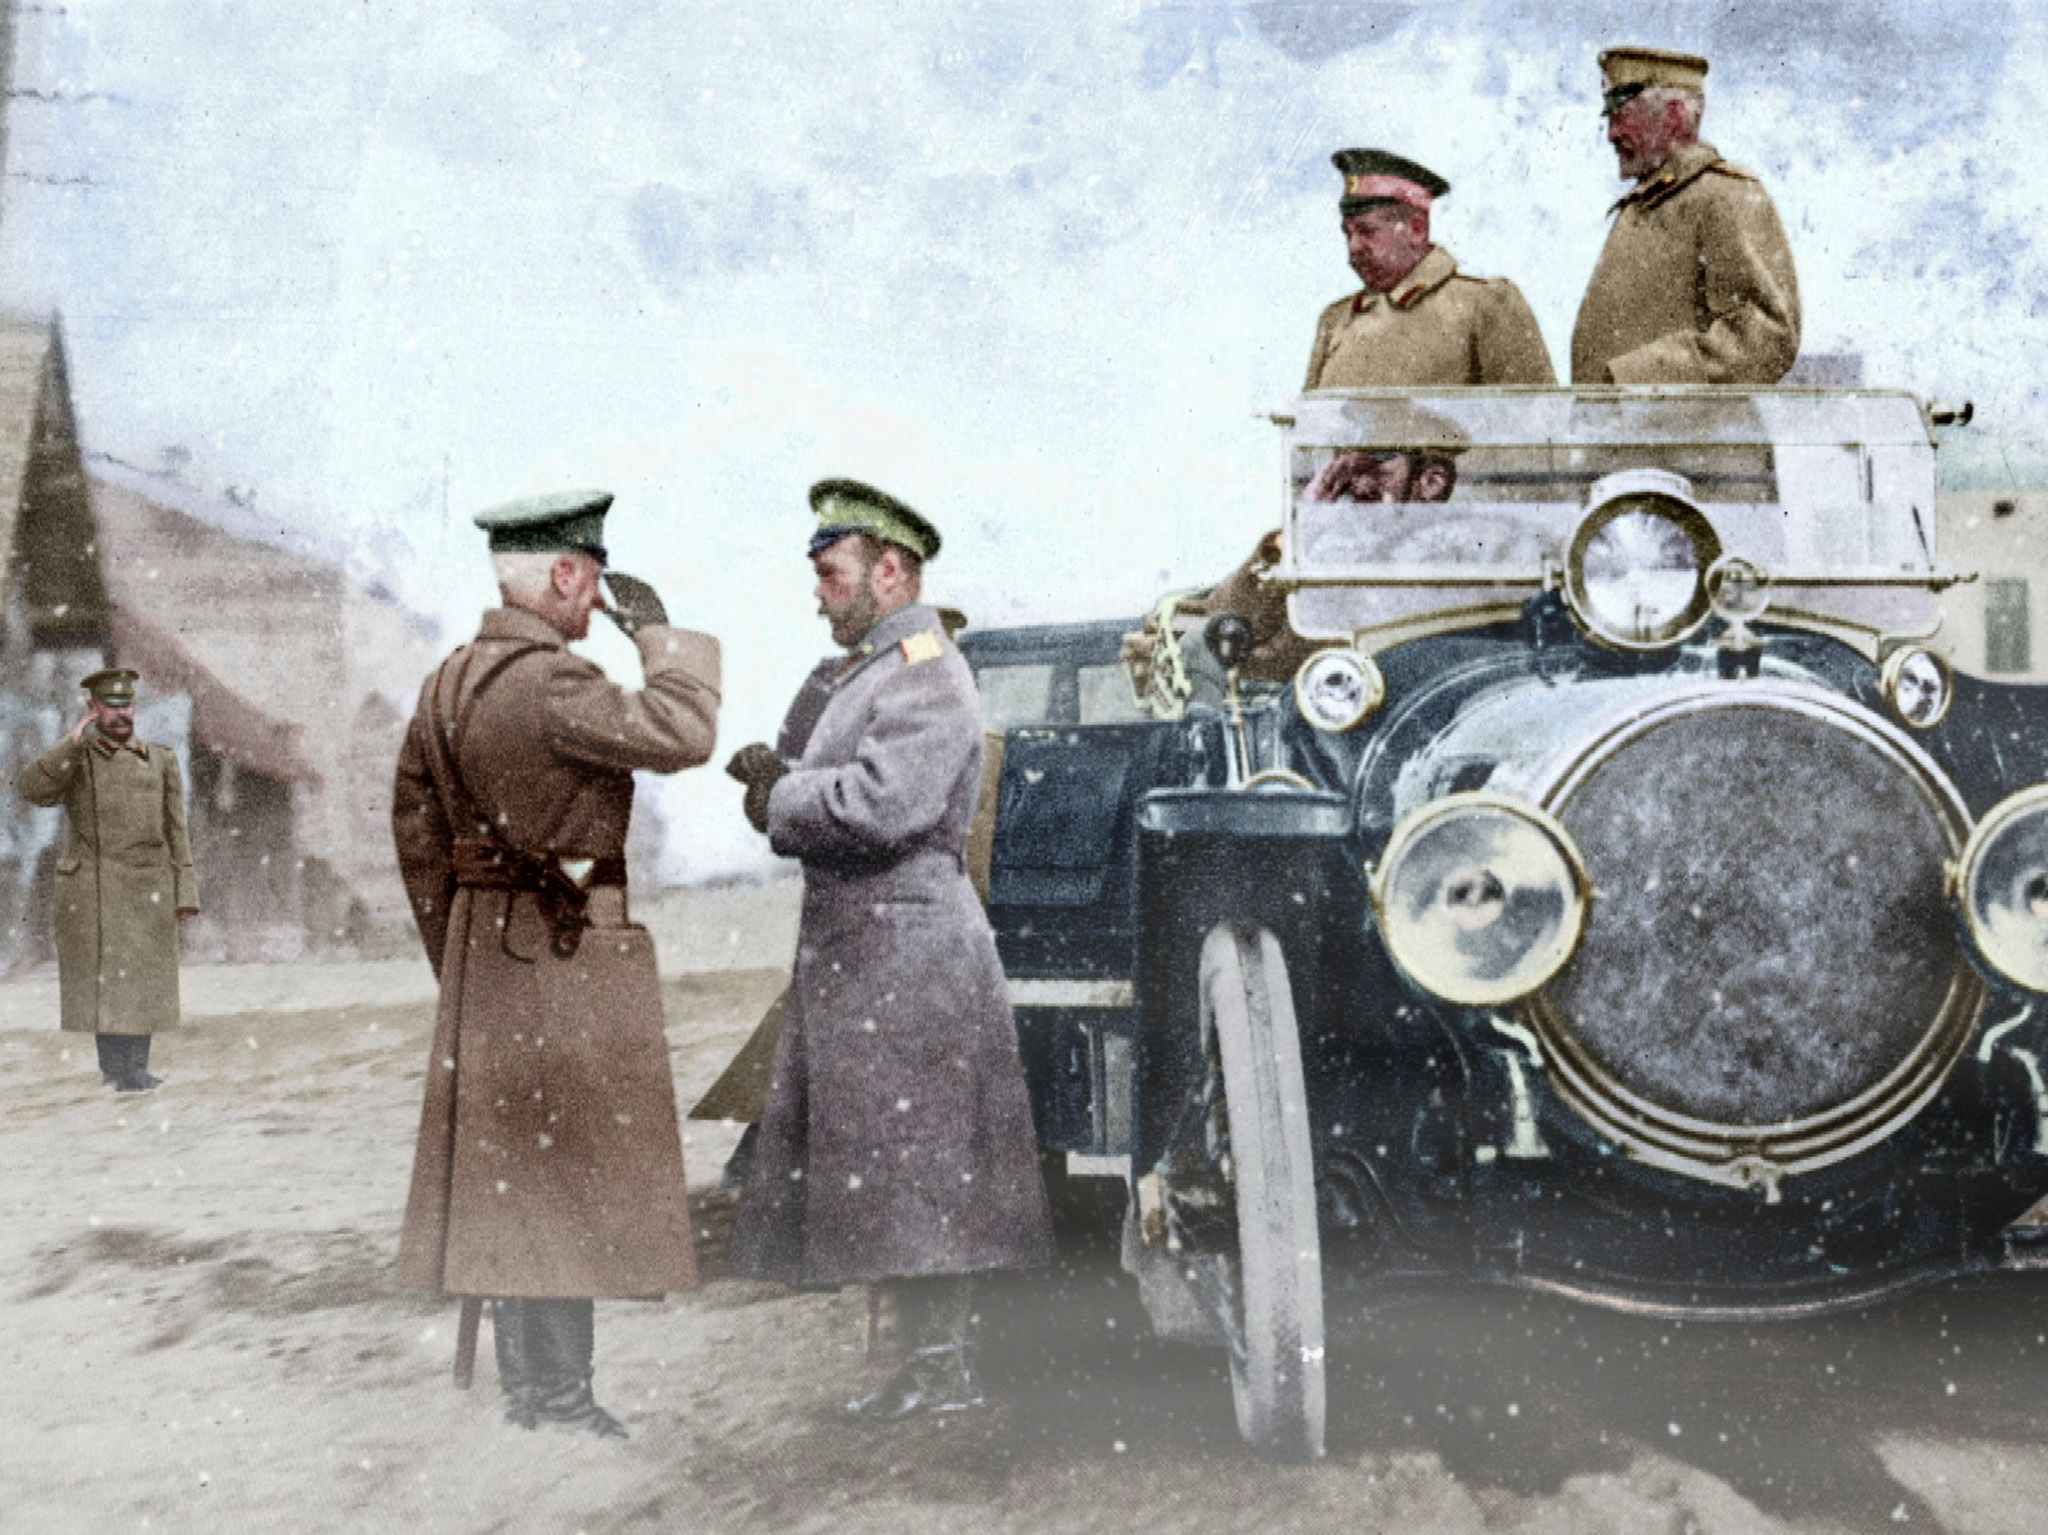 The Tsar on the front.  This image is from 1917: One Year, Two Revolutions. [Photo of the day - February 2019]